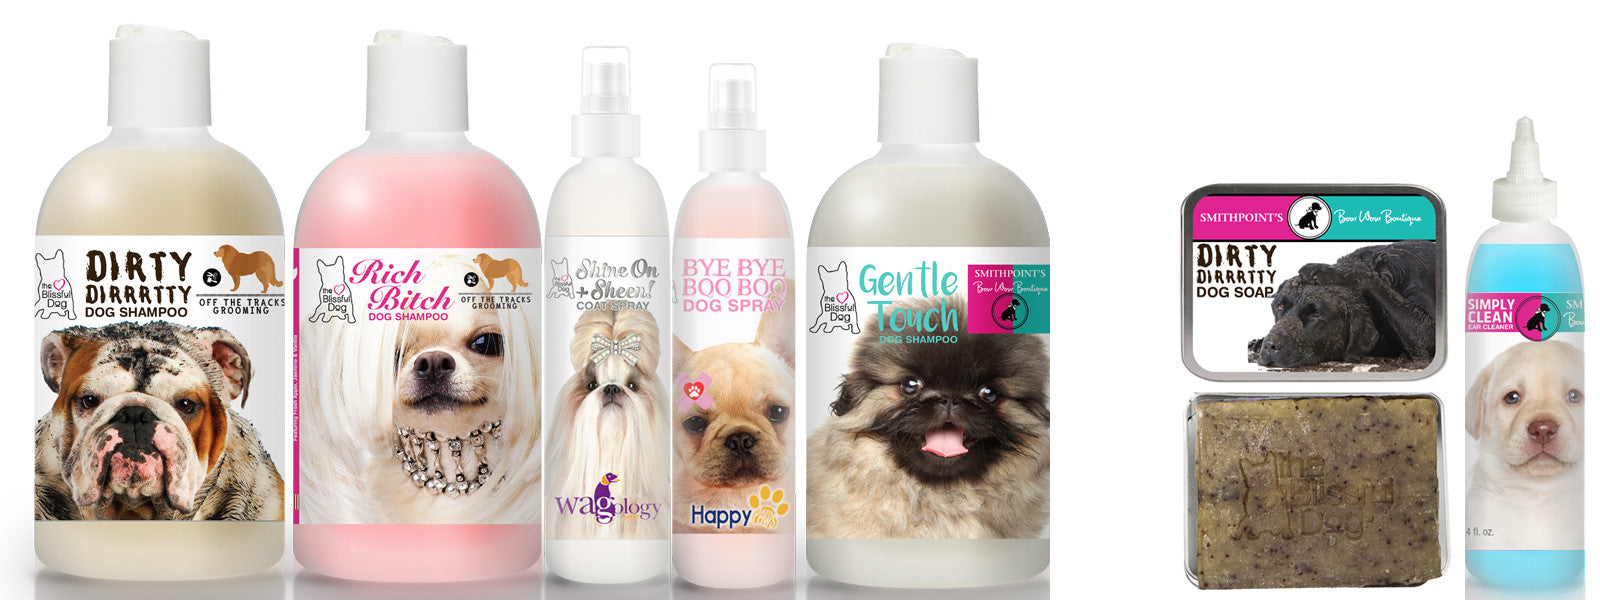 blissfully clean dogs custom labels